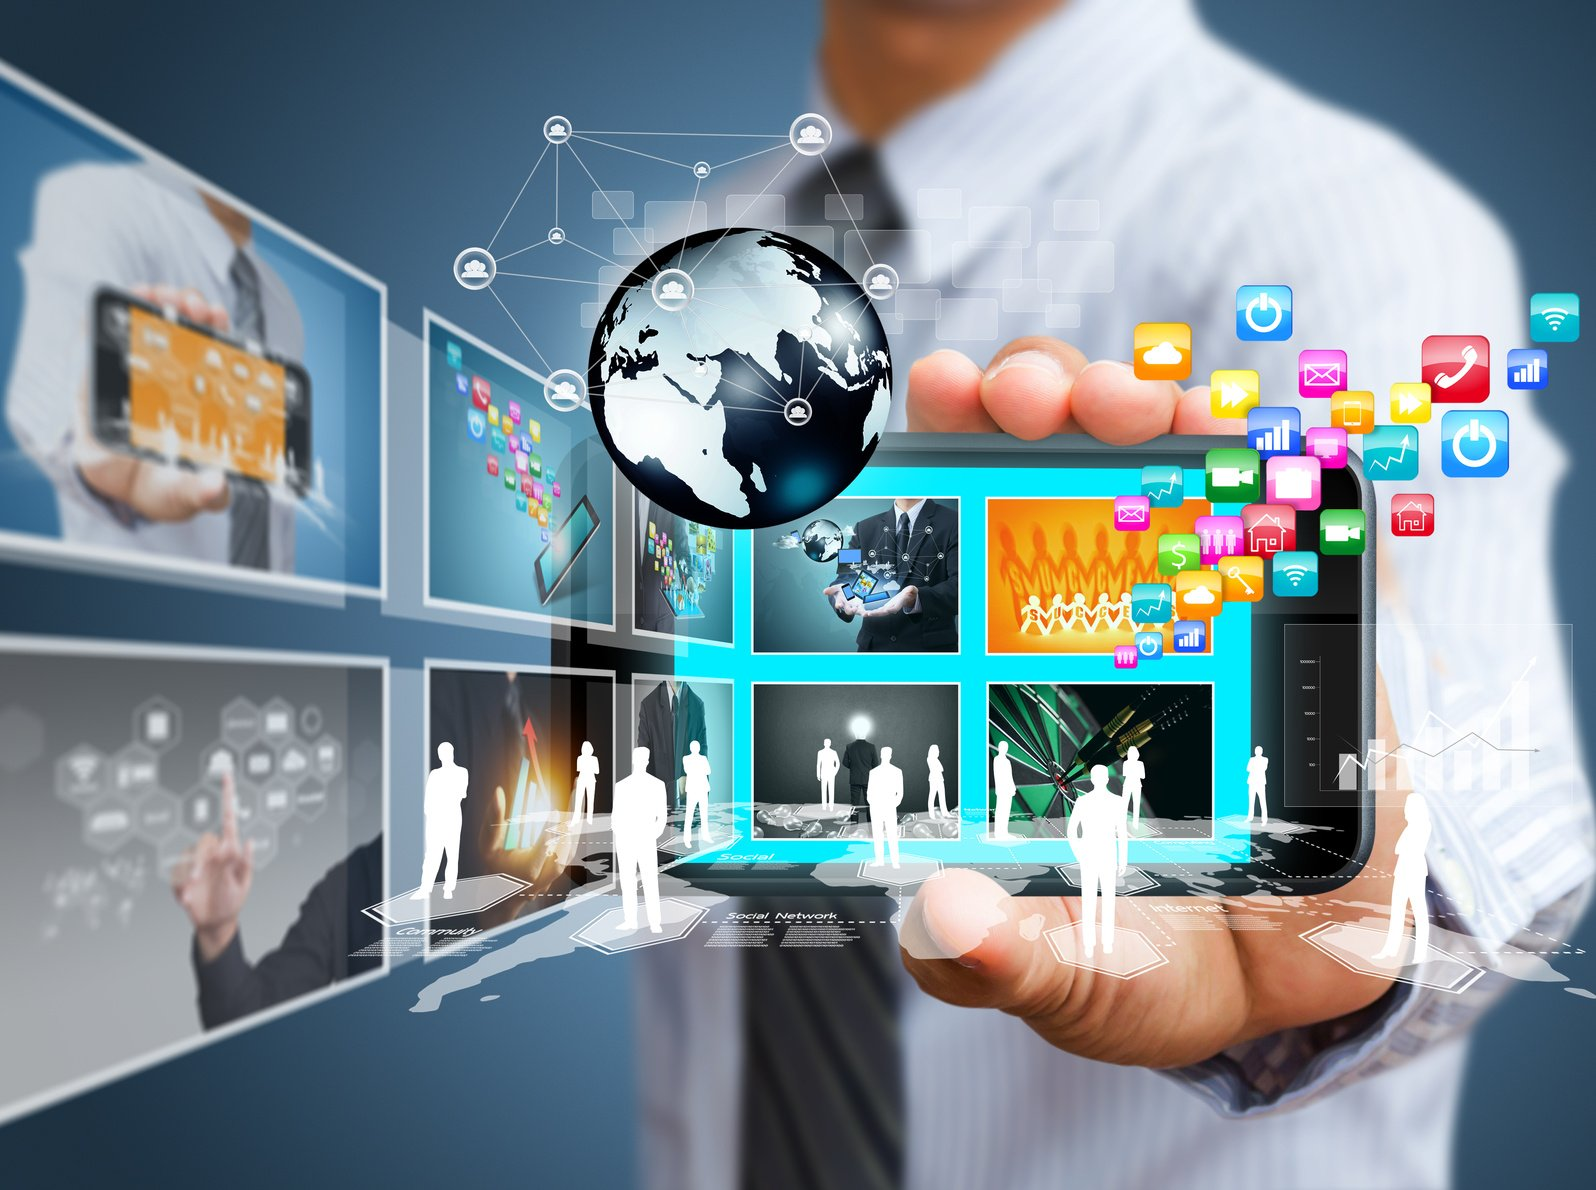 Touch screen mobile phone with business concept